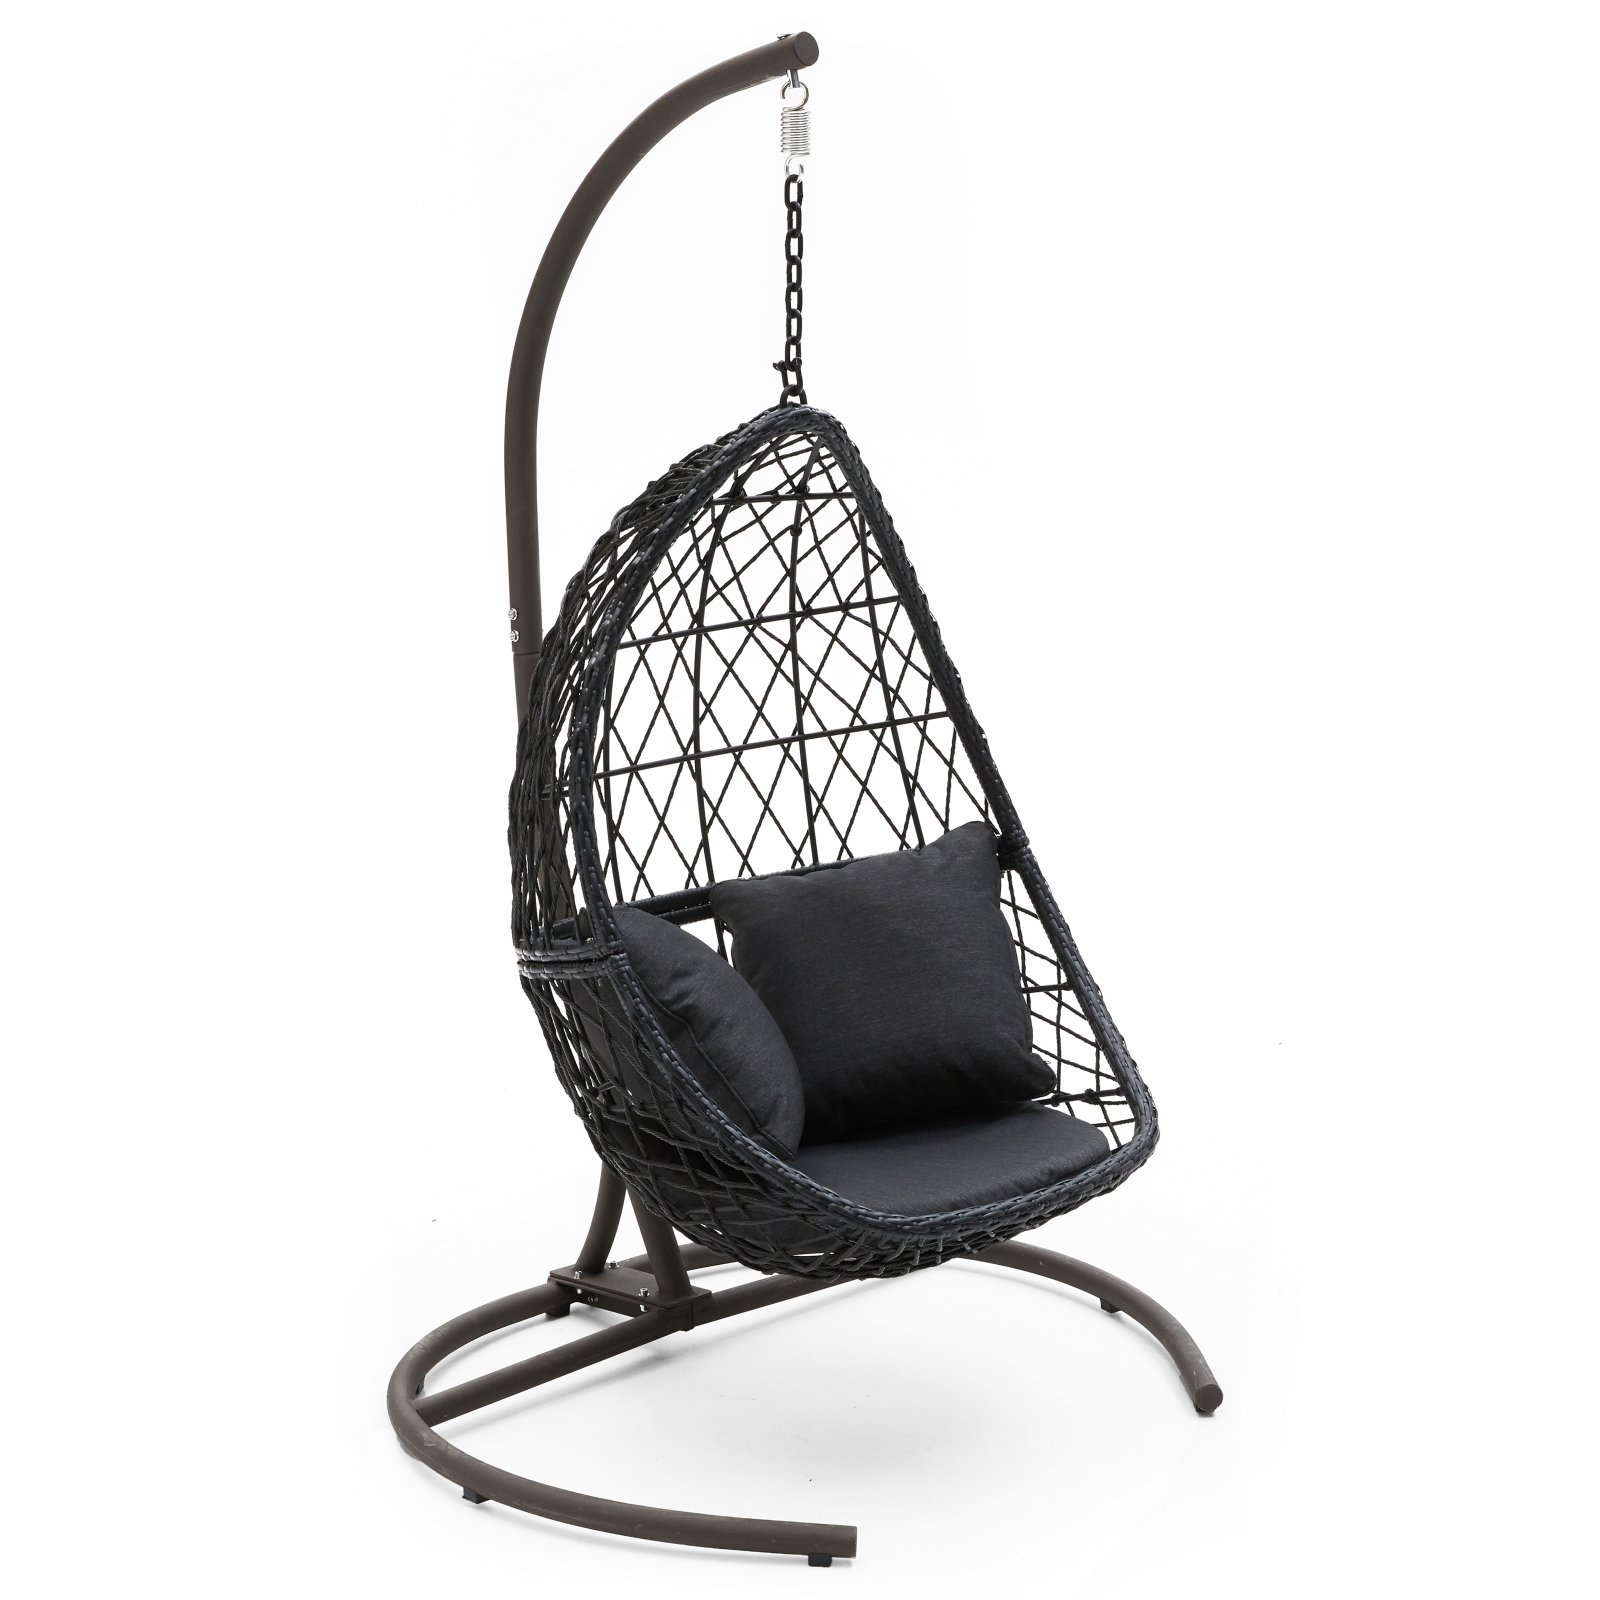 Egg Wicker Chairs Outdoor Belham Living Capeside Outdoor Wicker Hanging Egg Chair